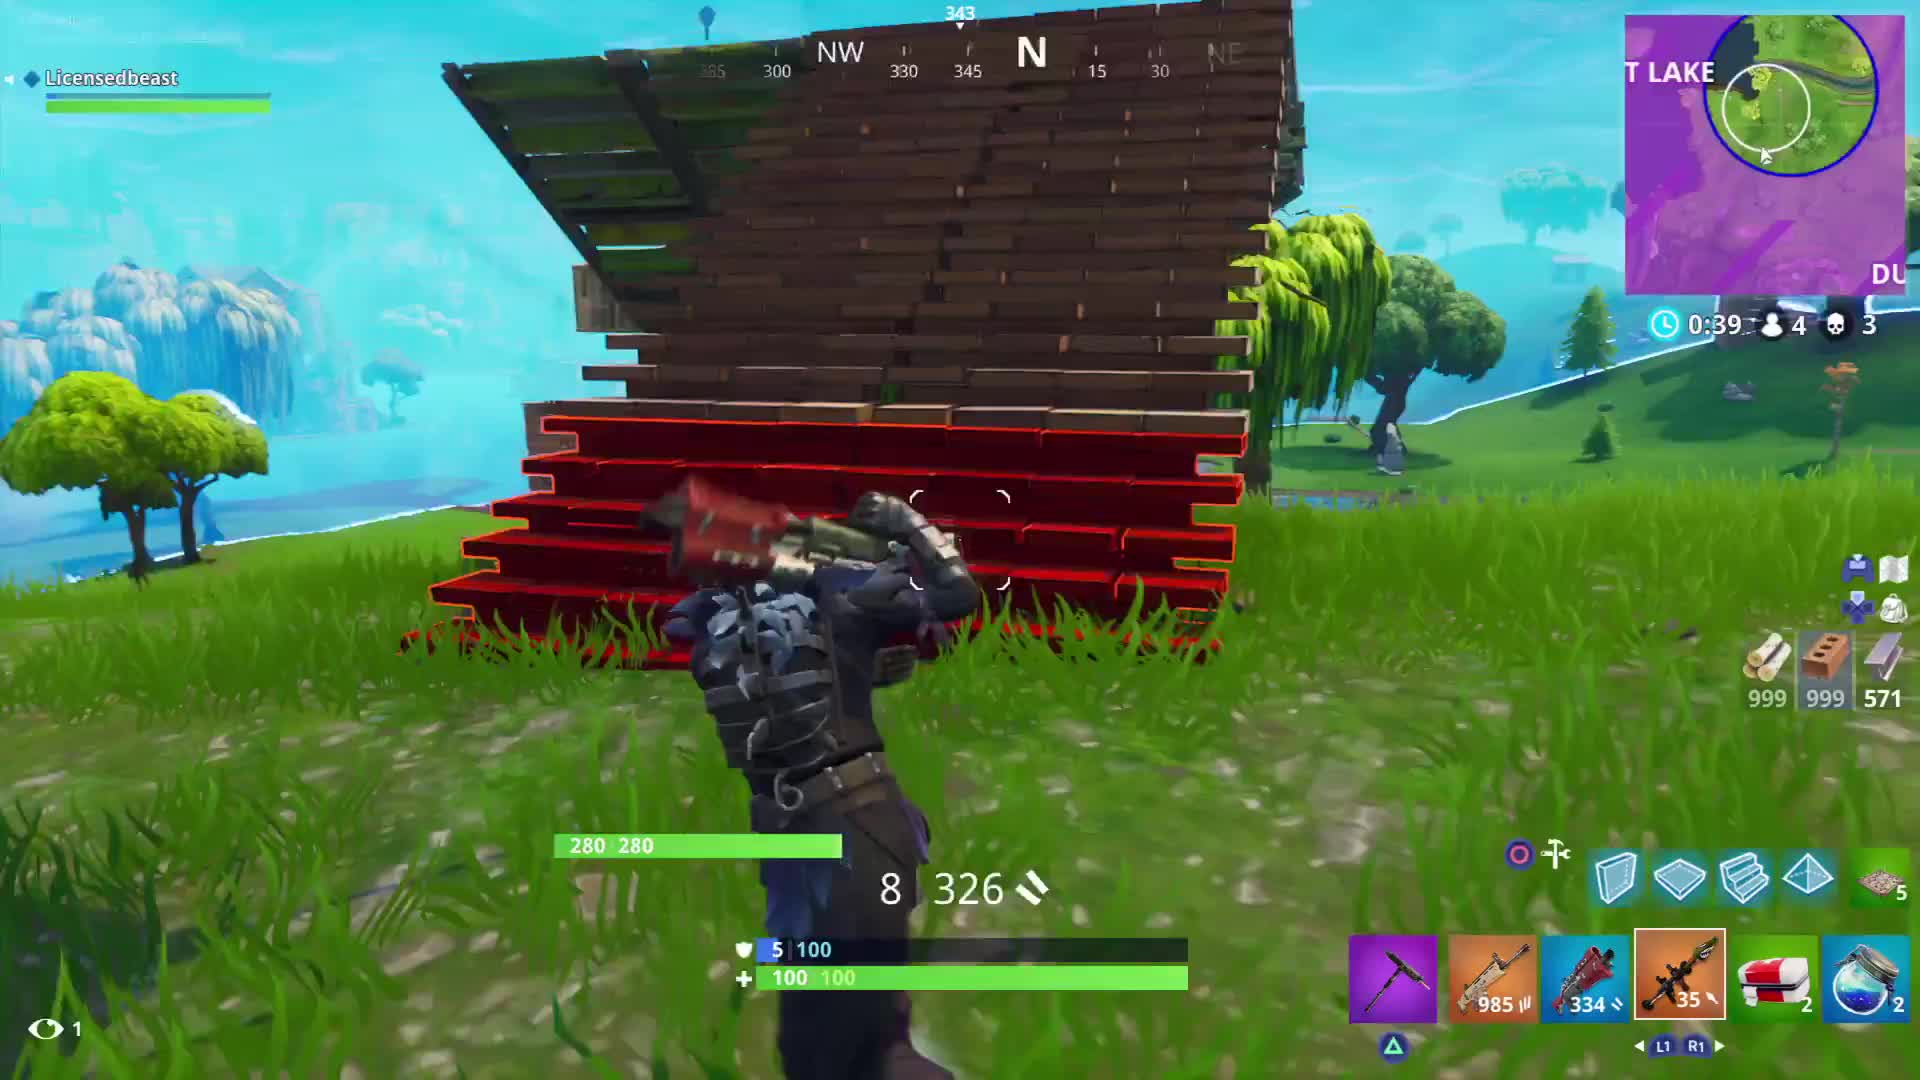 #PS4share, Fortnite, PlayStation 4, Sony Interactive Entertainment, Cheaters in Fortnite PS4 GIFs